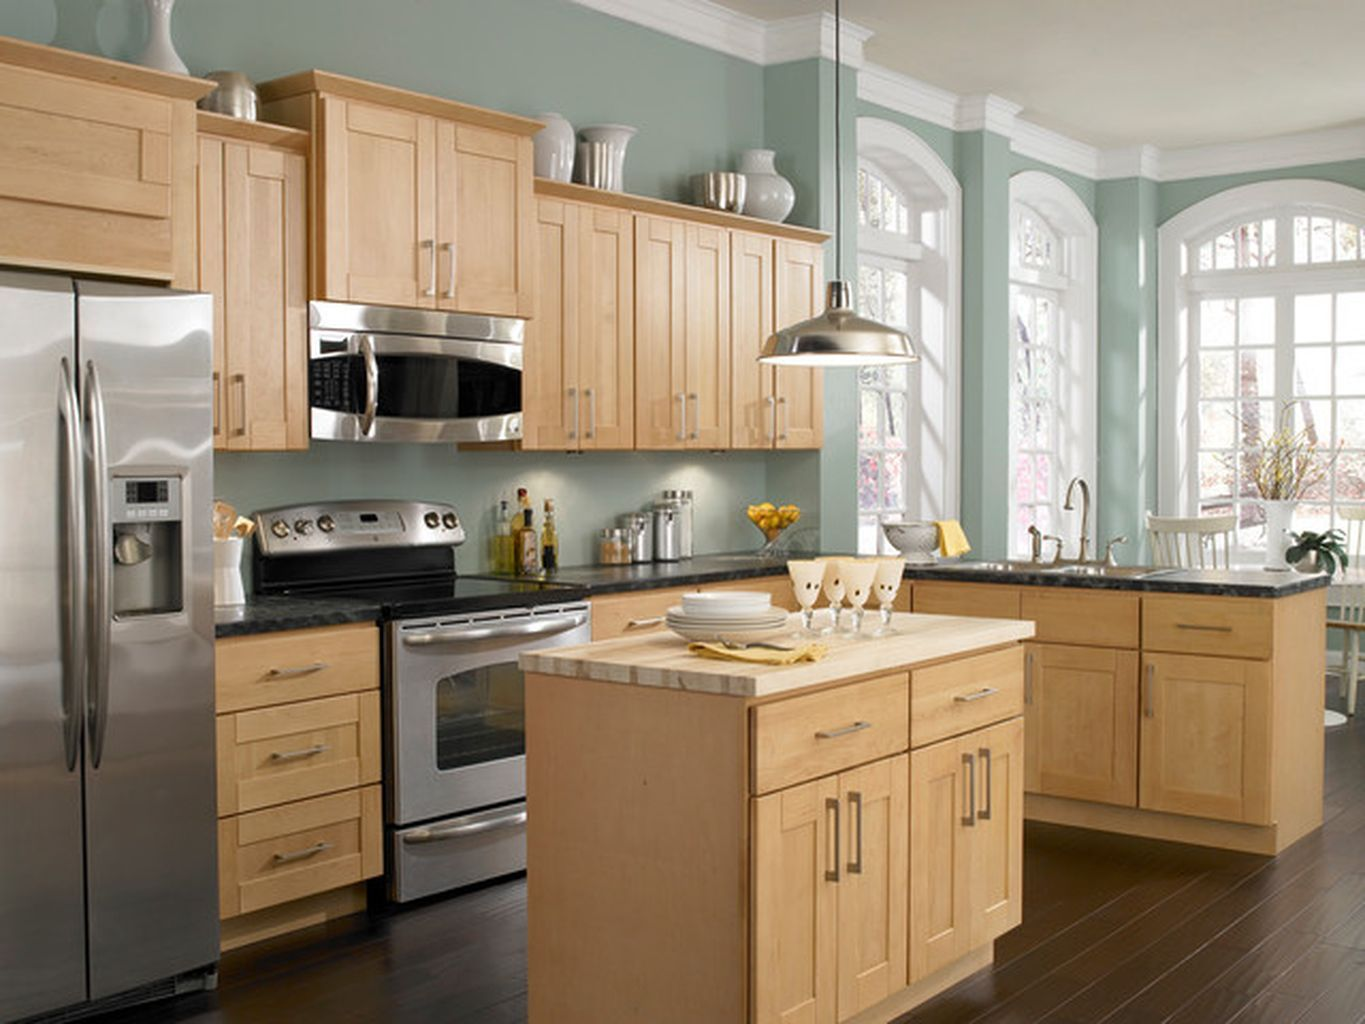 38 Inspiring Kitchen Paint Colors Ideas With Oak Cabinet With Images Maple Kitchen Cabinets Light Wood Cabinets